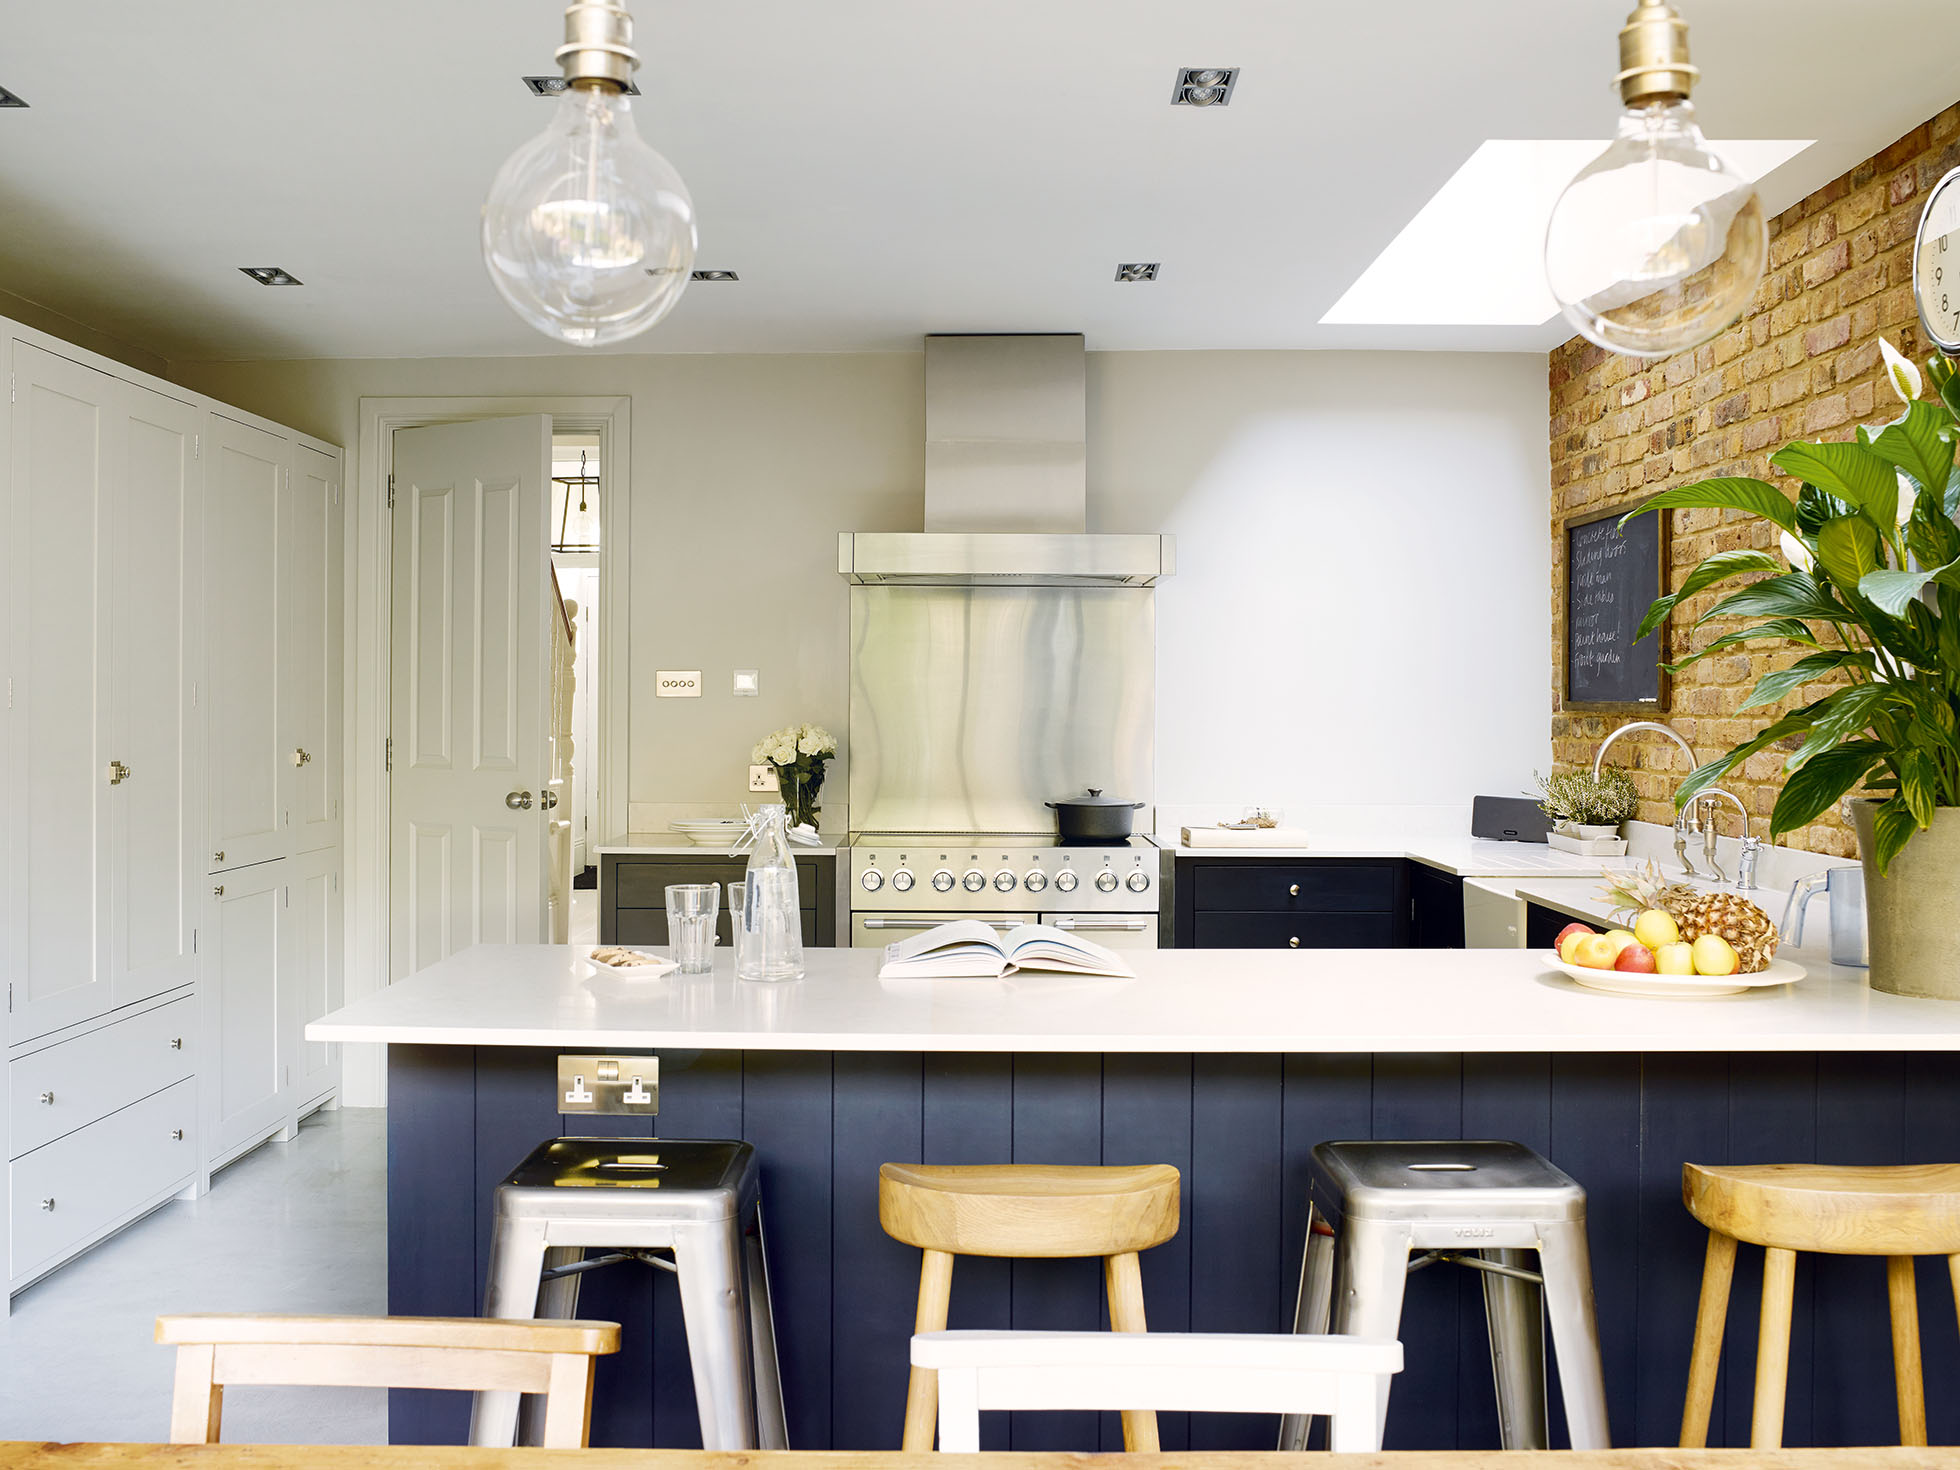 Kitchen case study: a kitchen-diner with a utility room | Real Homes